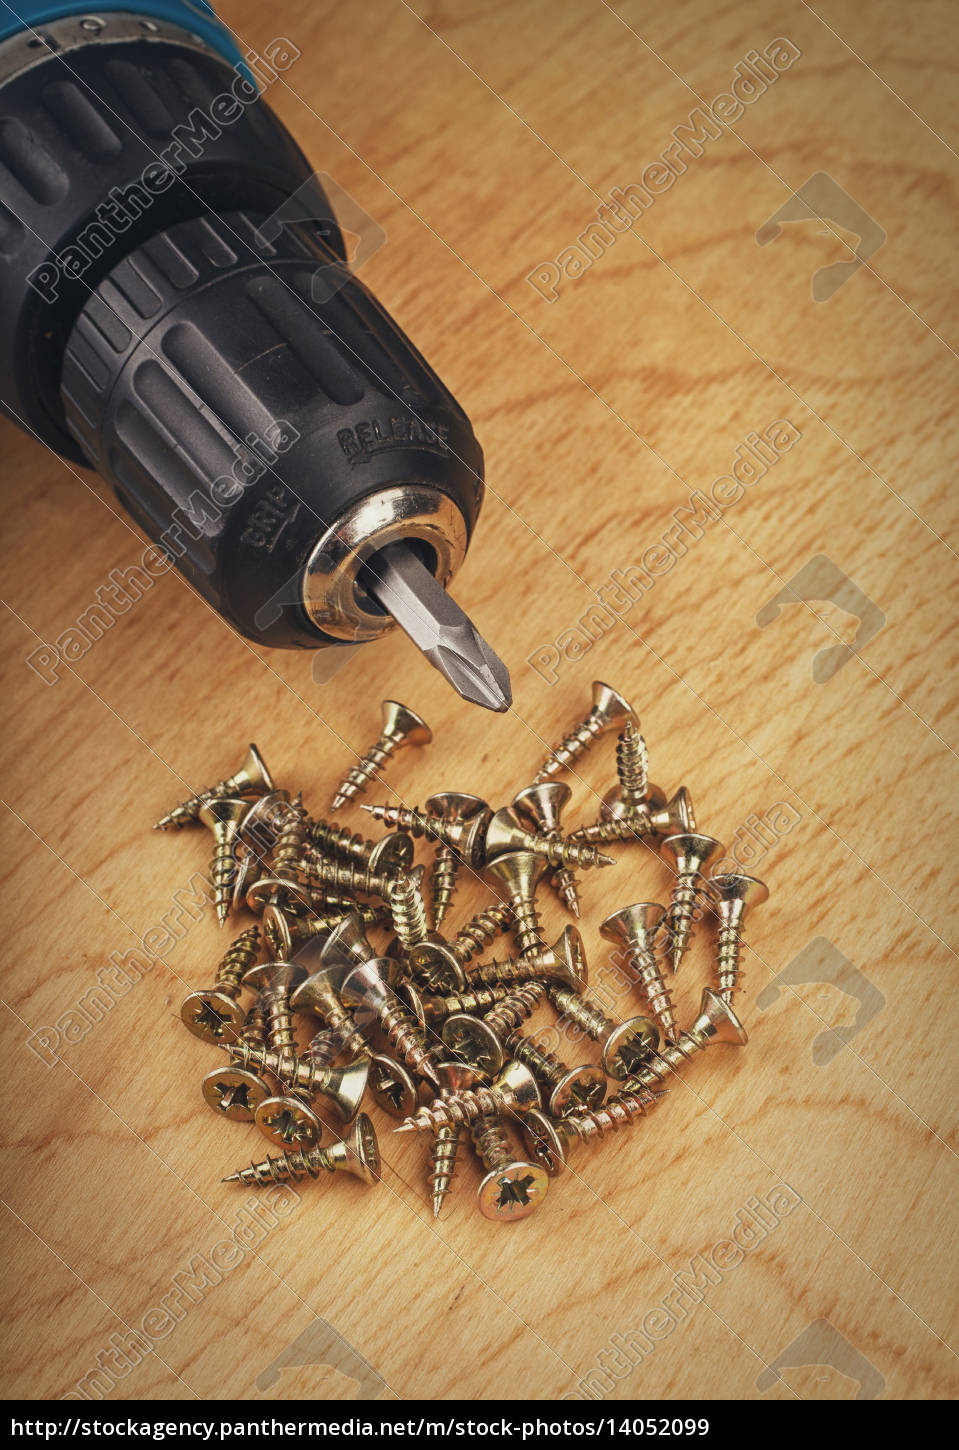 electric, drill, and, screws - 14052099